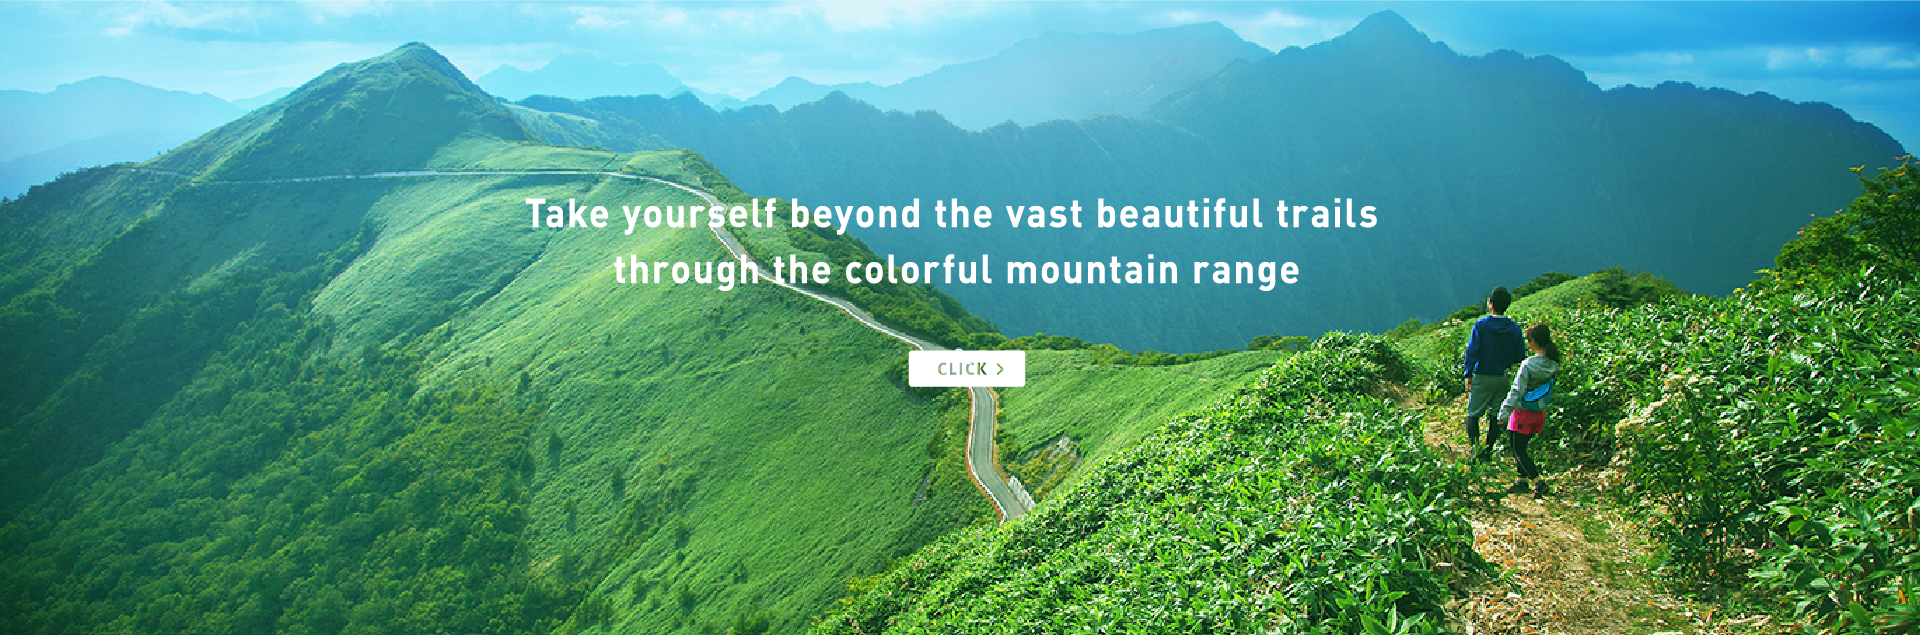 Take yourself beyond the vast beautiful trails through the colorful mountain range